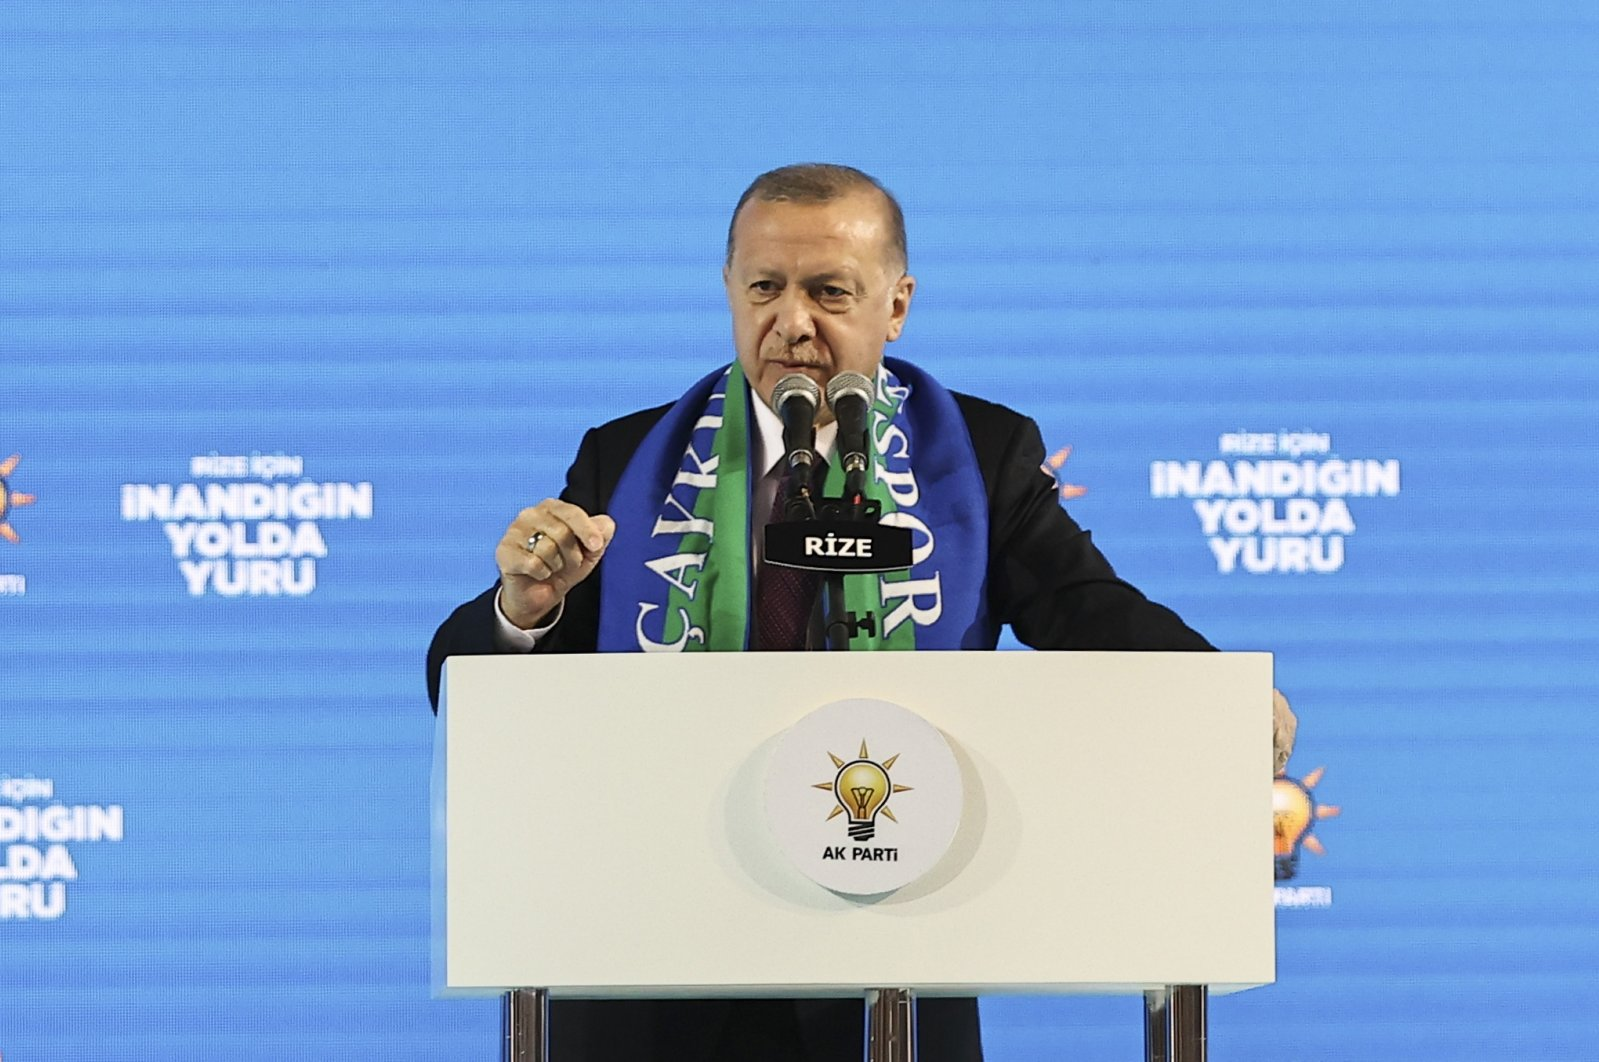 President Recep Tayyip Erdoğan speaks at the Justice and Development Party's (AK Party) congress in Rize province, northeastern Turkey, Feb. 15, 2021. (AA Photo)